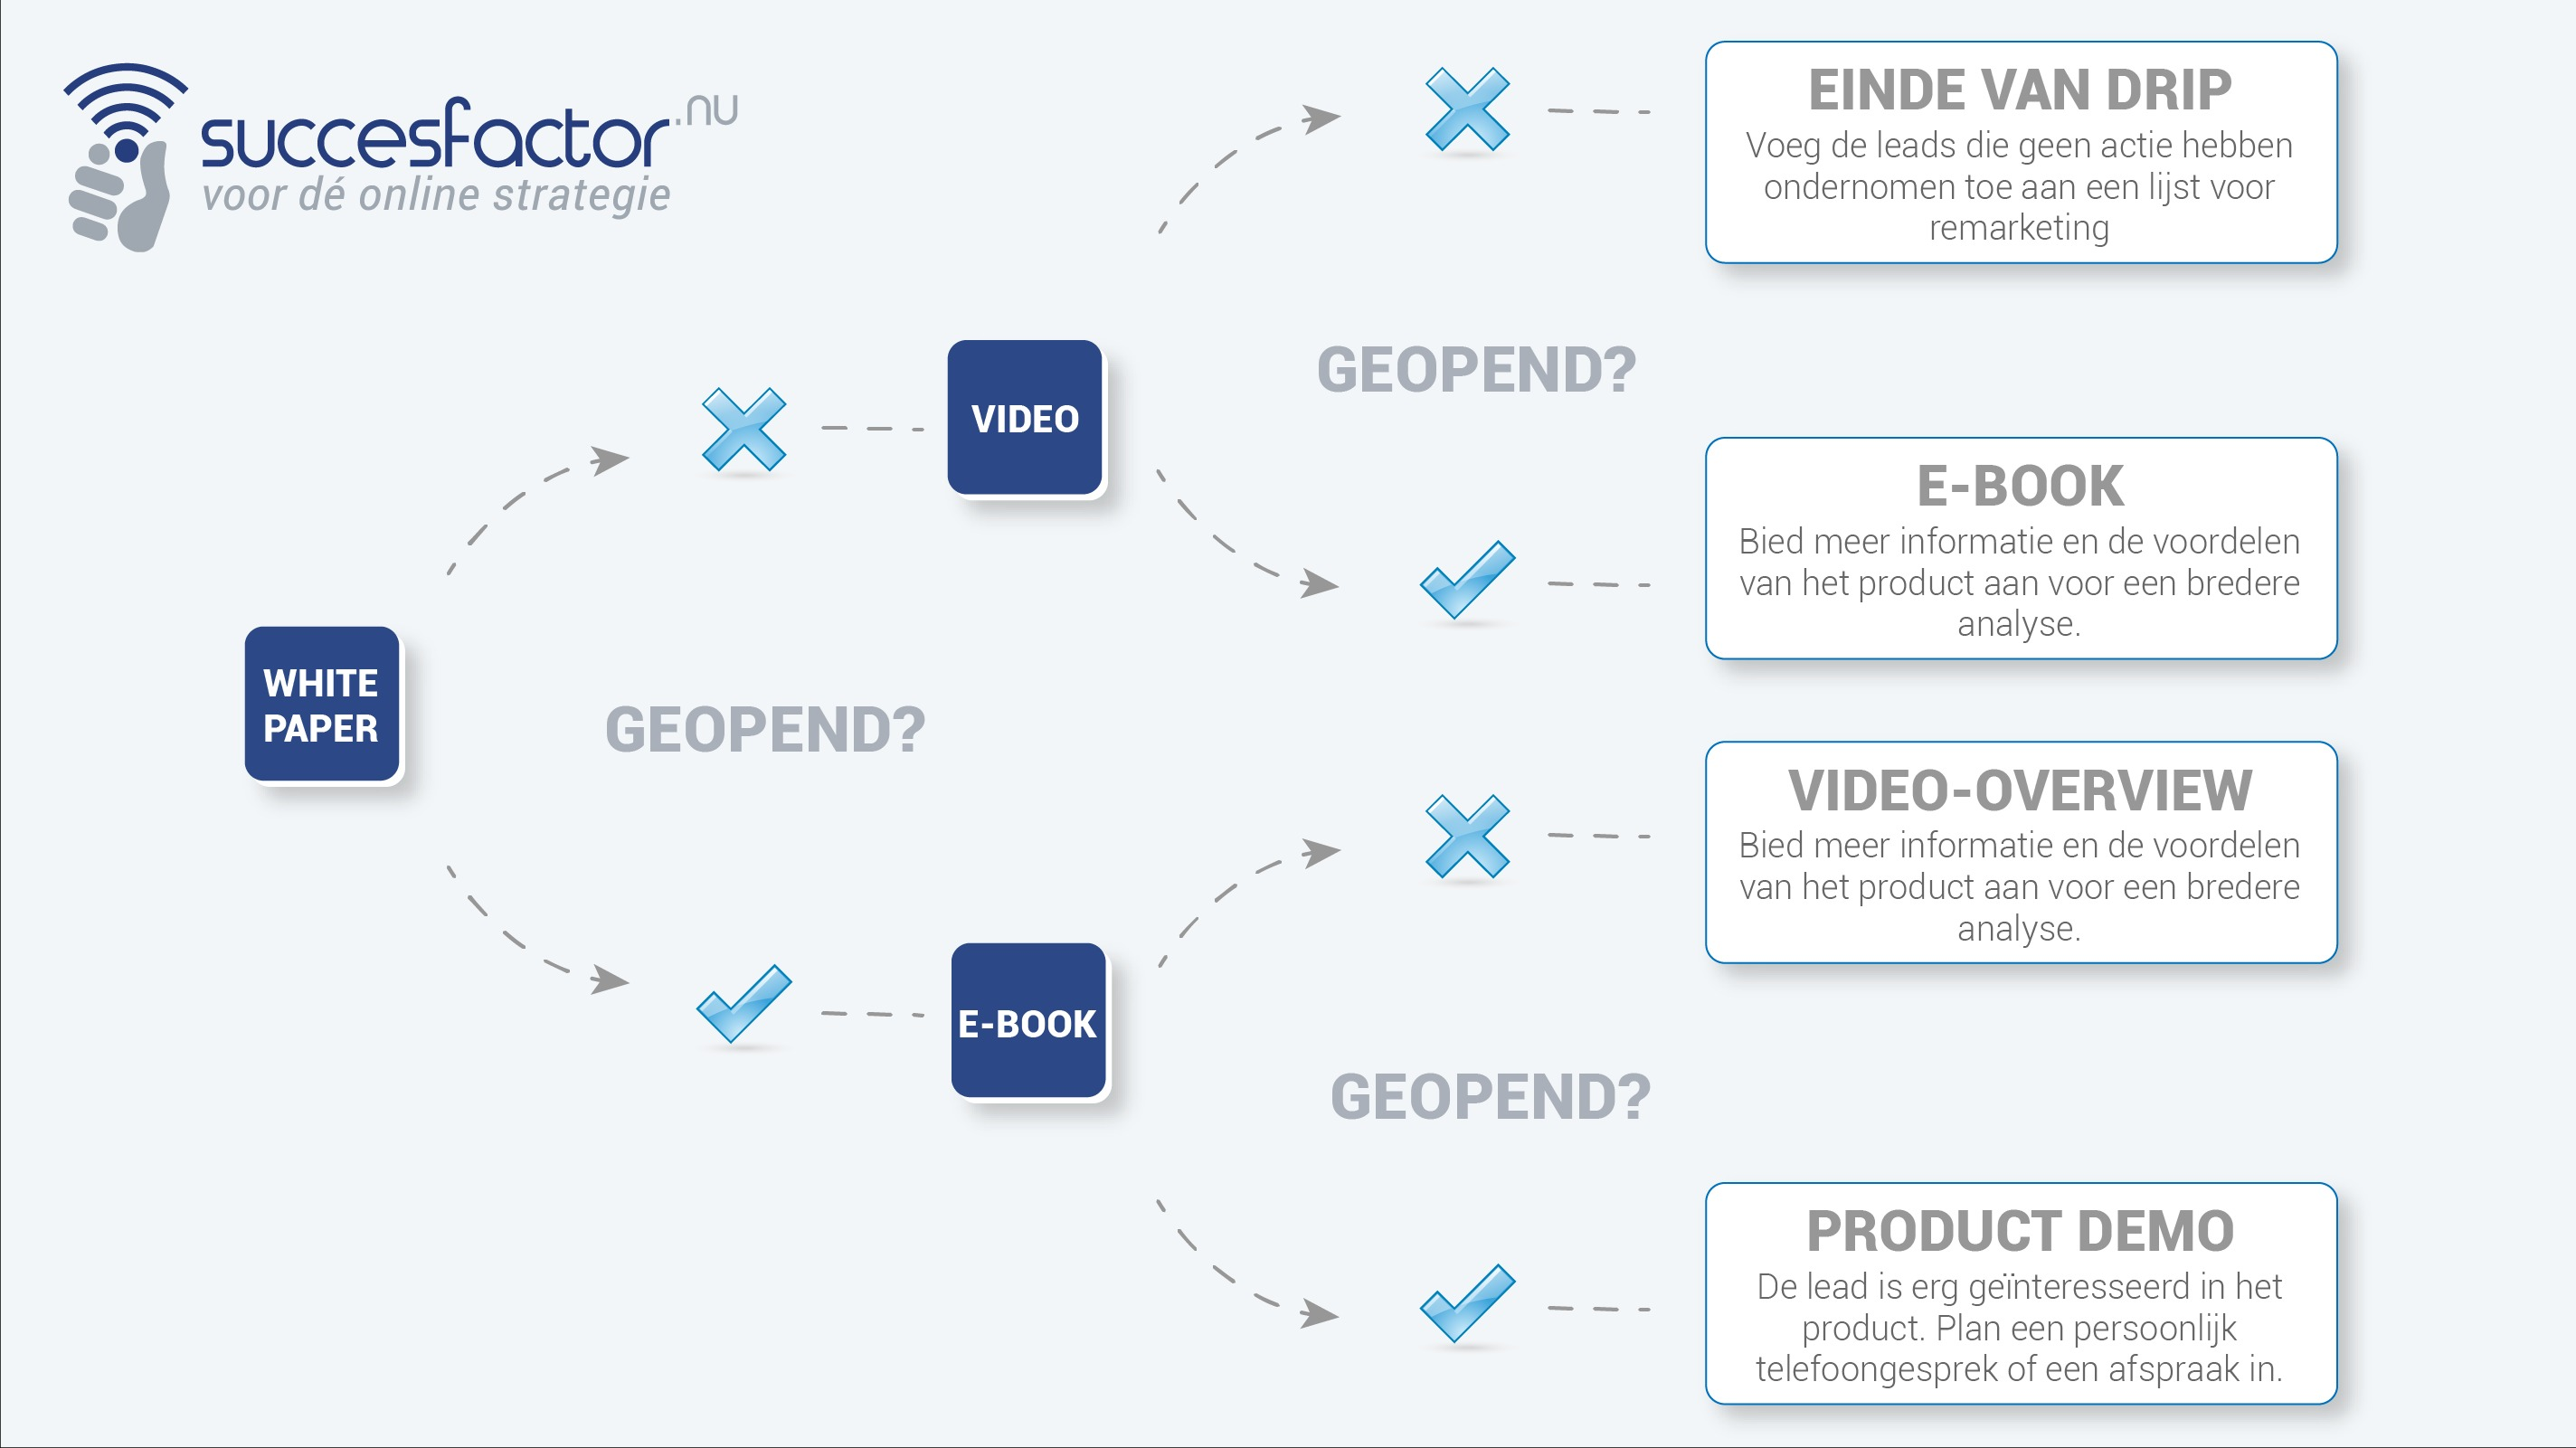 De inzet van Dripmarketing in je e-mailmarketing strategie